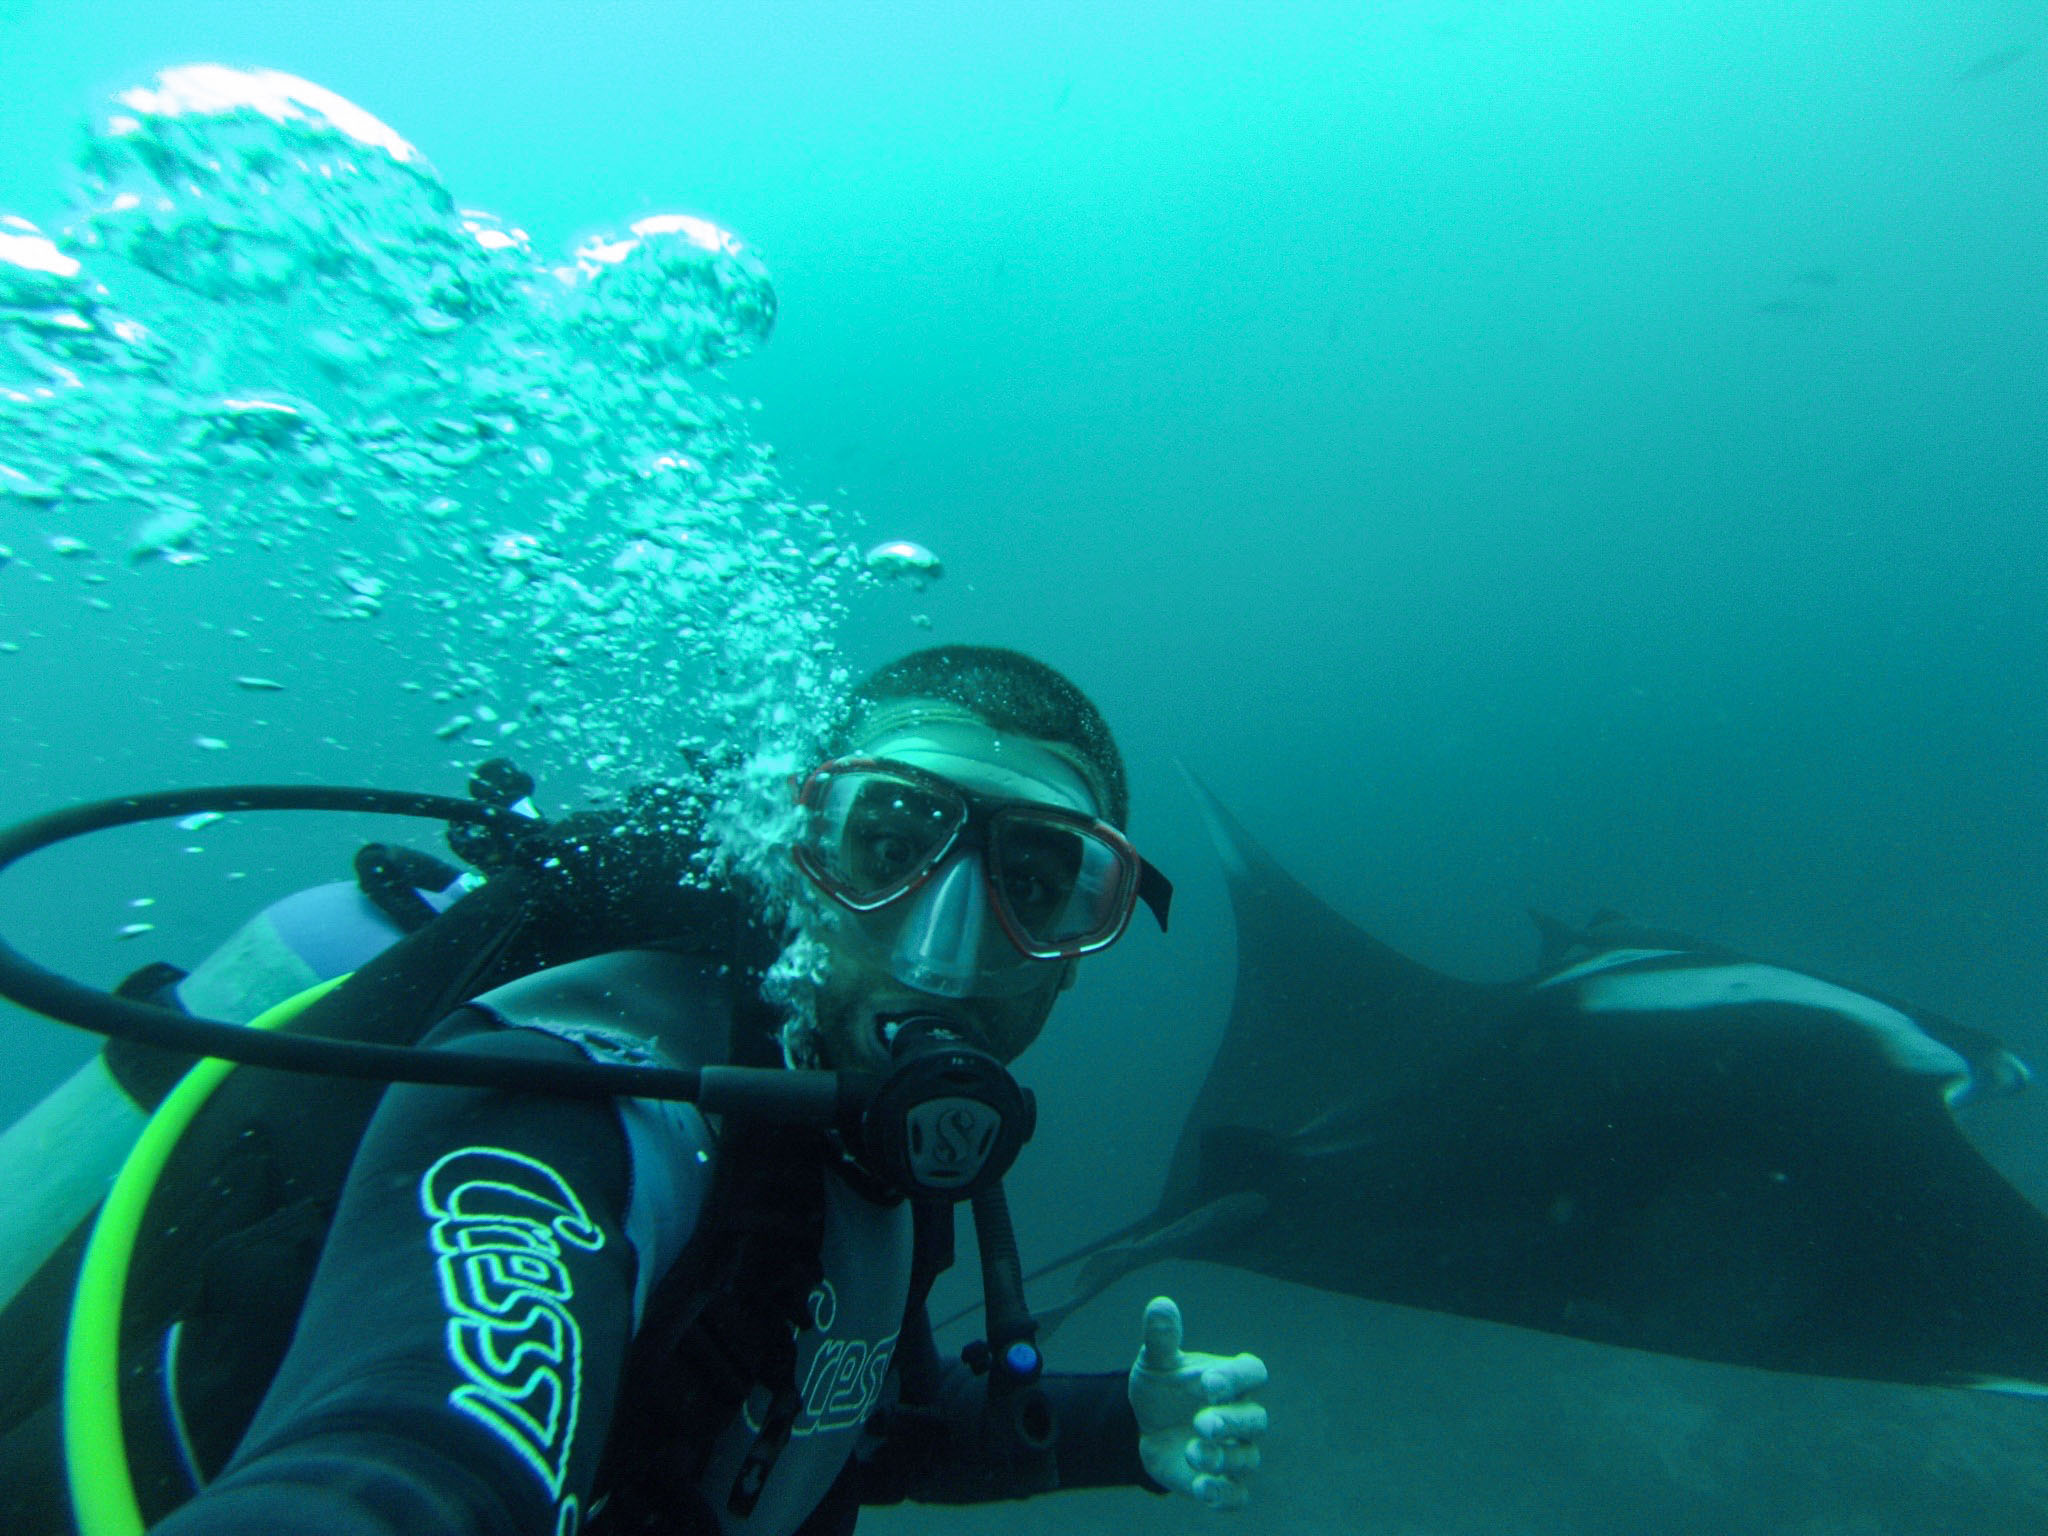 Manta rays are one of the common species of rays around the Galapagos Islands, and an encounter with one on a dive is an incredible experience to have!